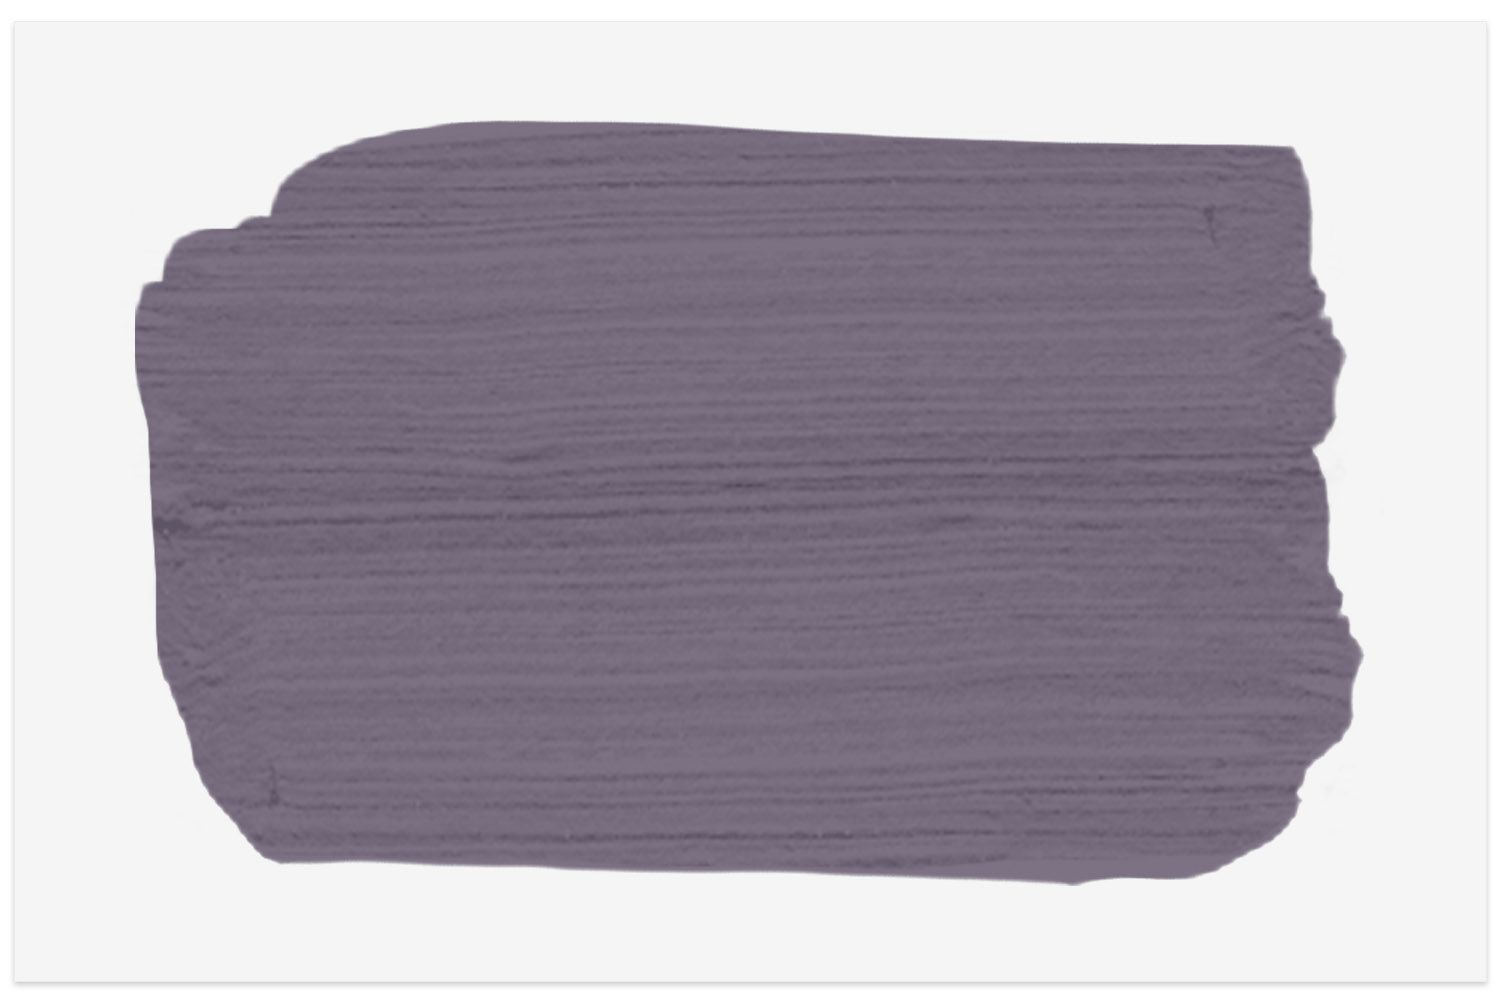 Peruvian Violet paint swatch from Behr Paints